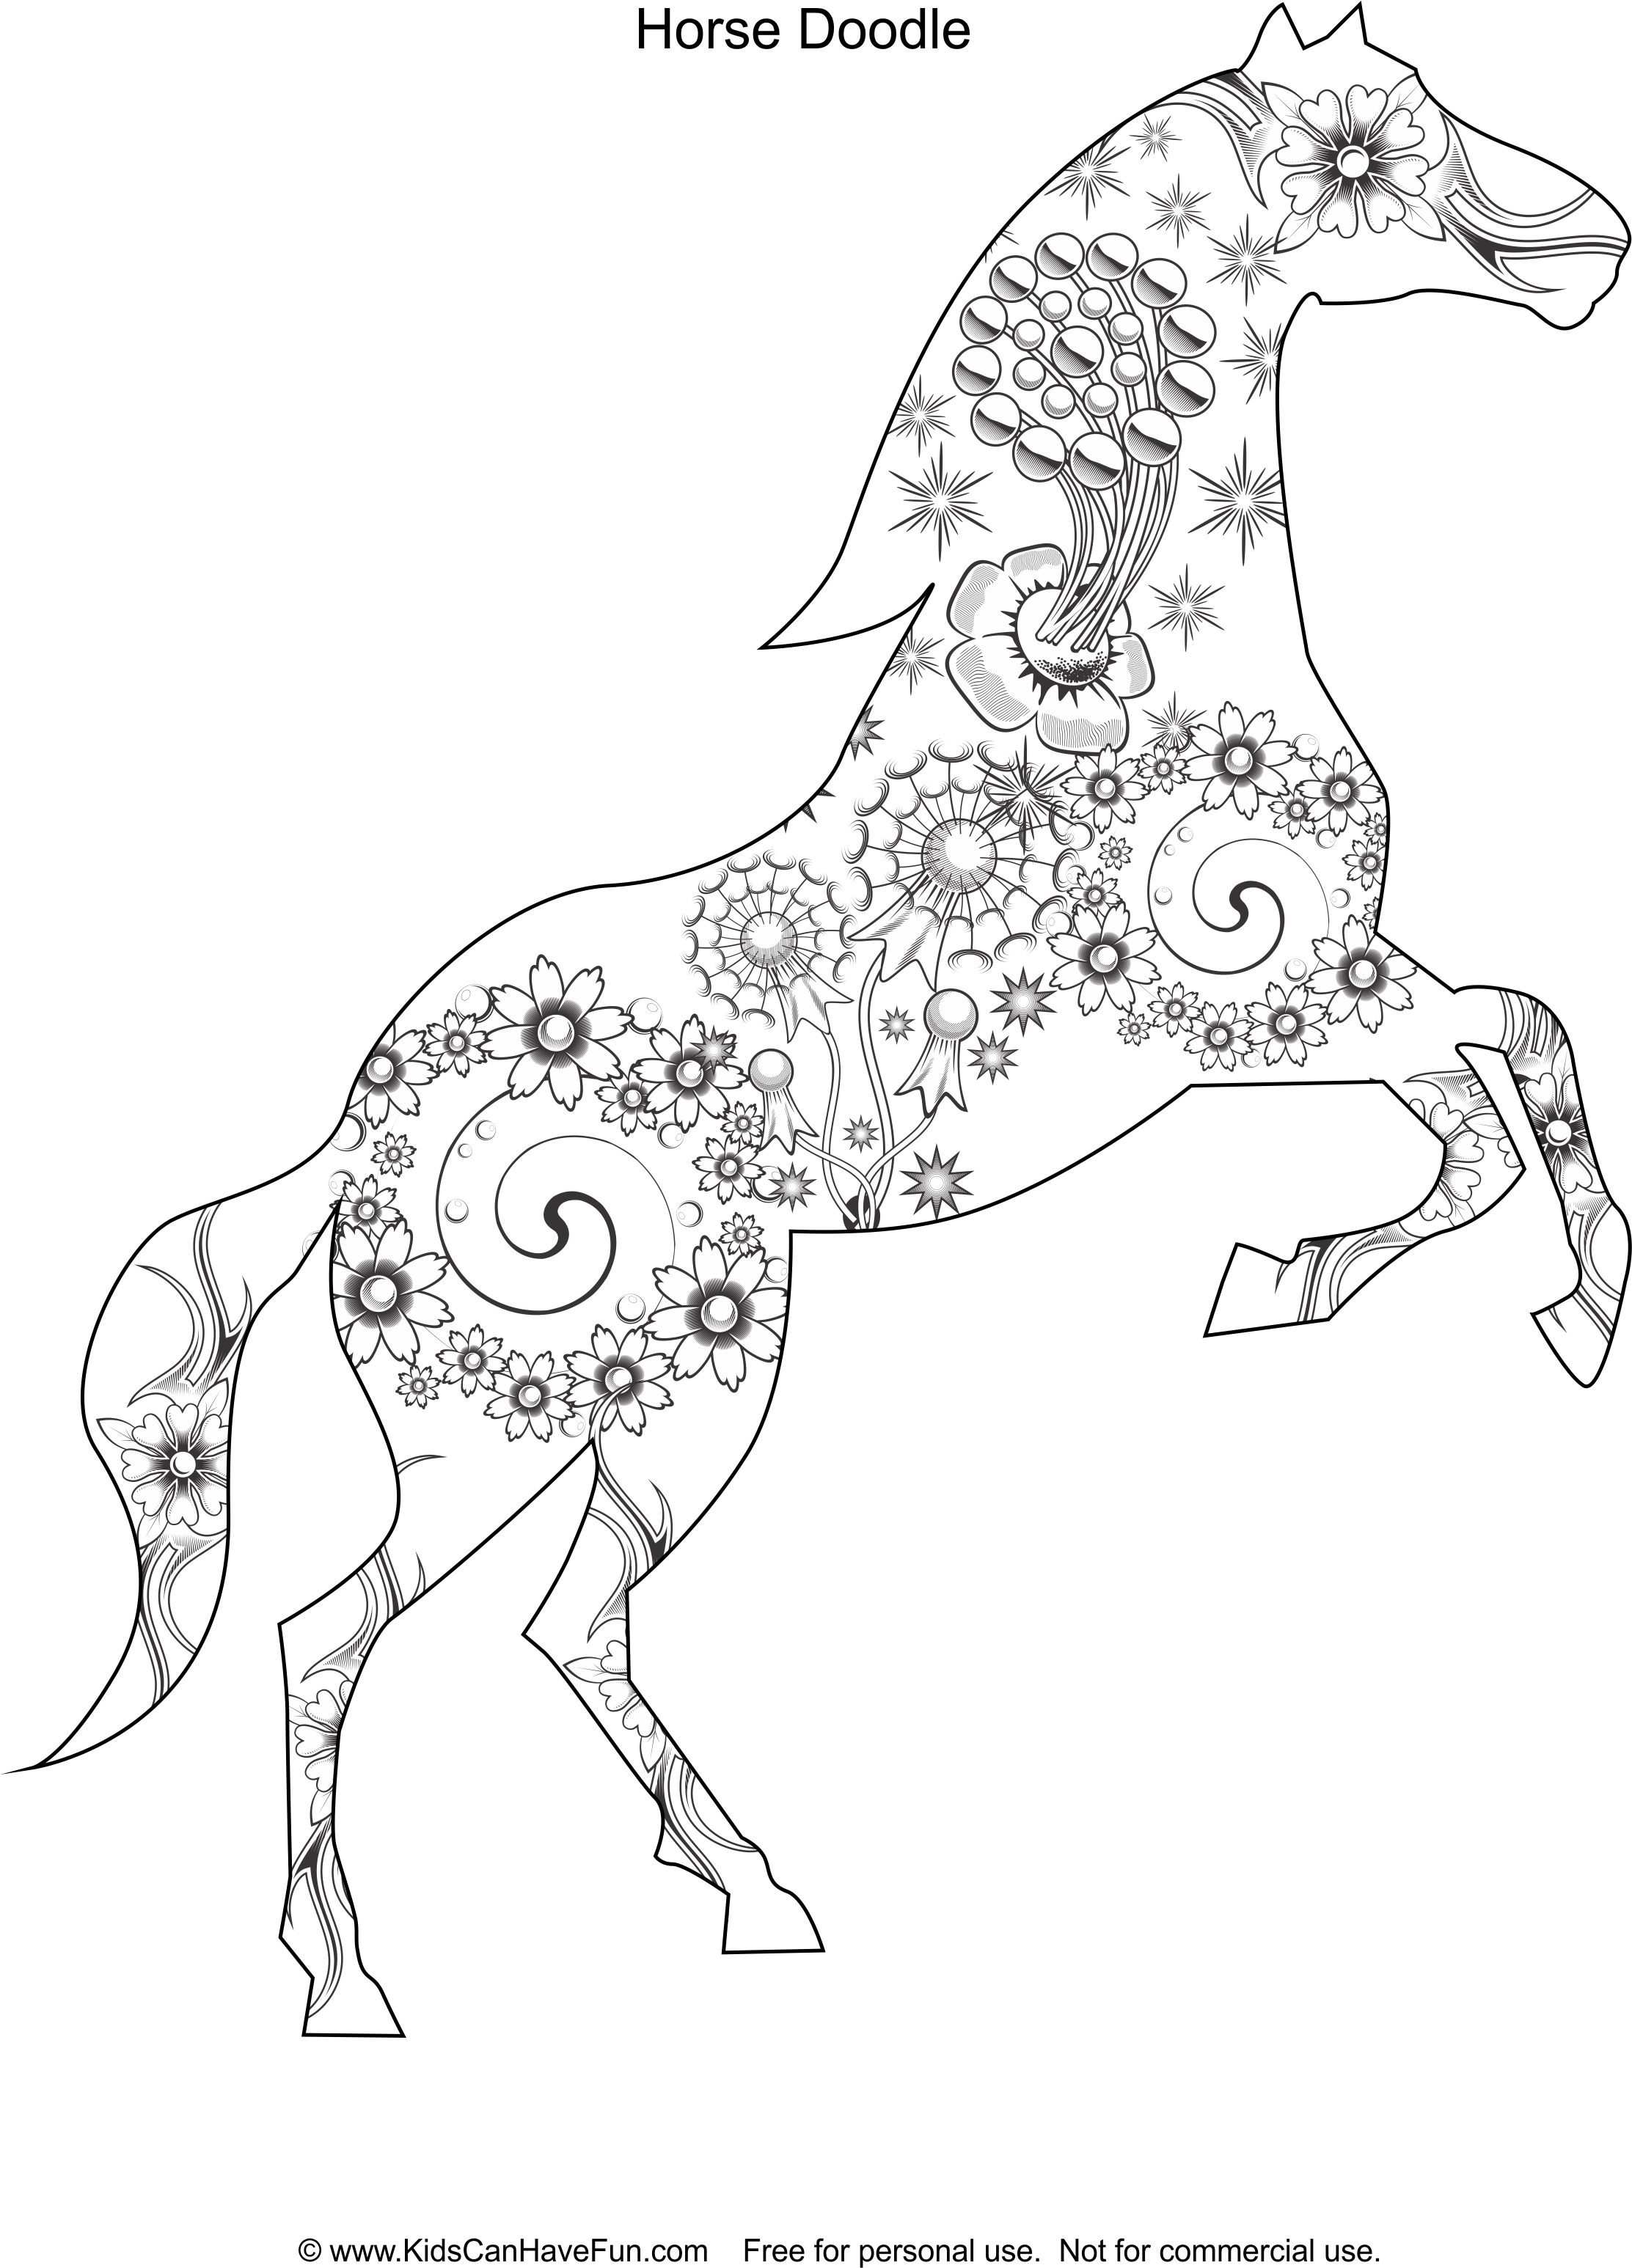 Horse Doodle Coloring Page Kidscanhavefun